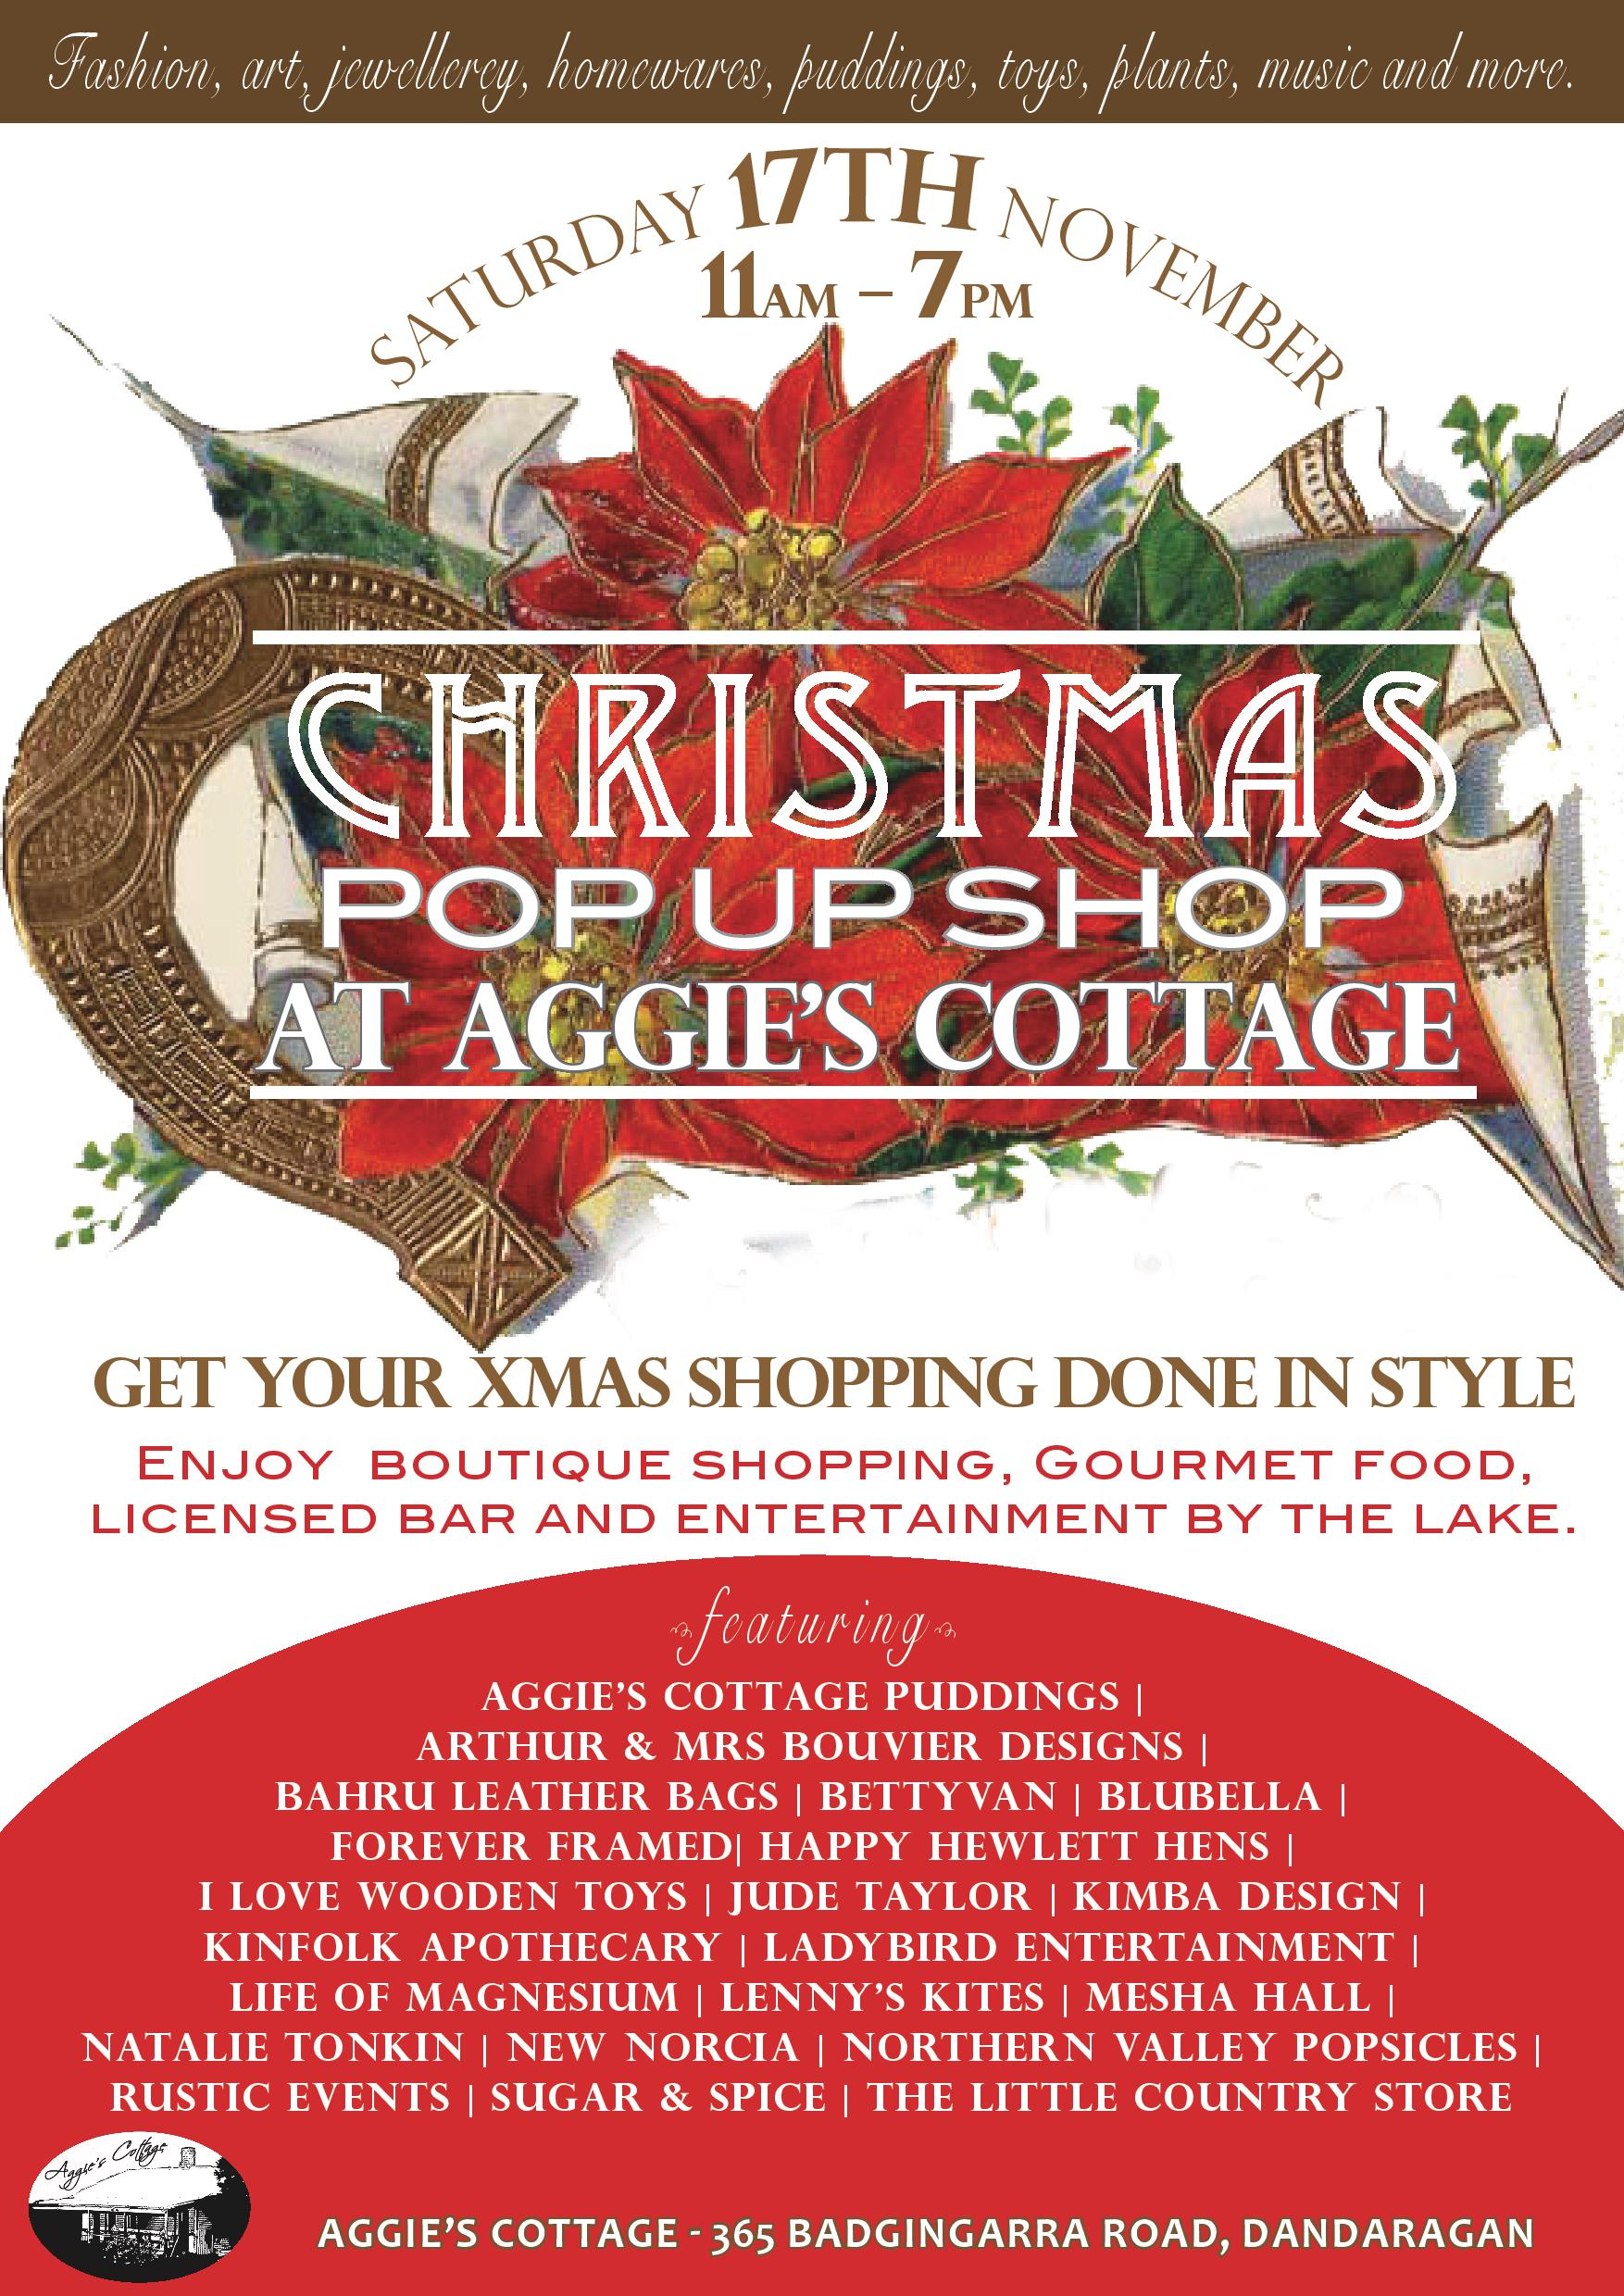 Aggies Cottage Christmas Pop Up Shop (Dandaragan)